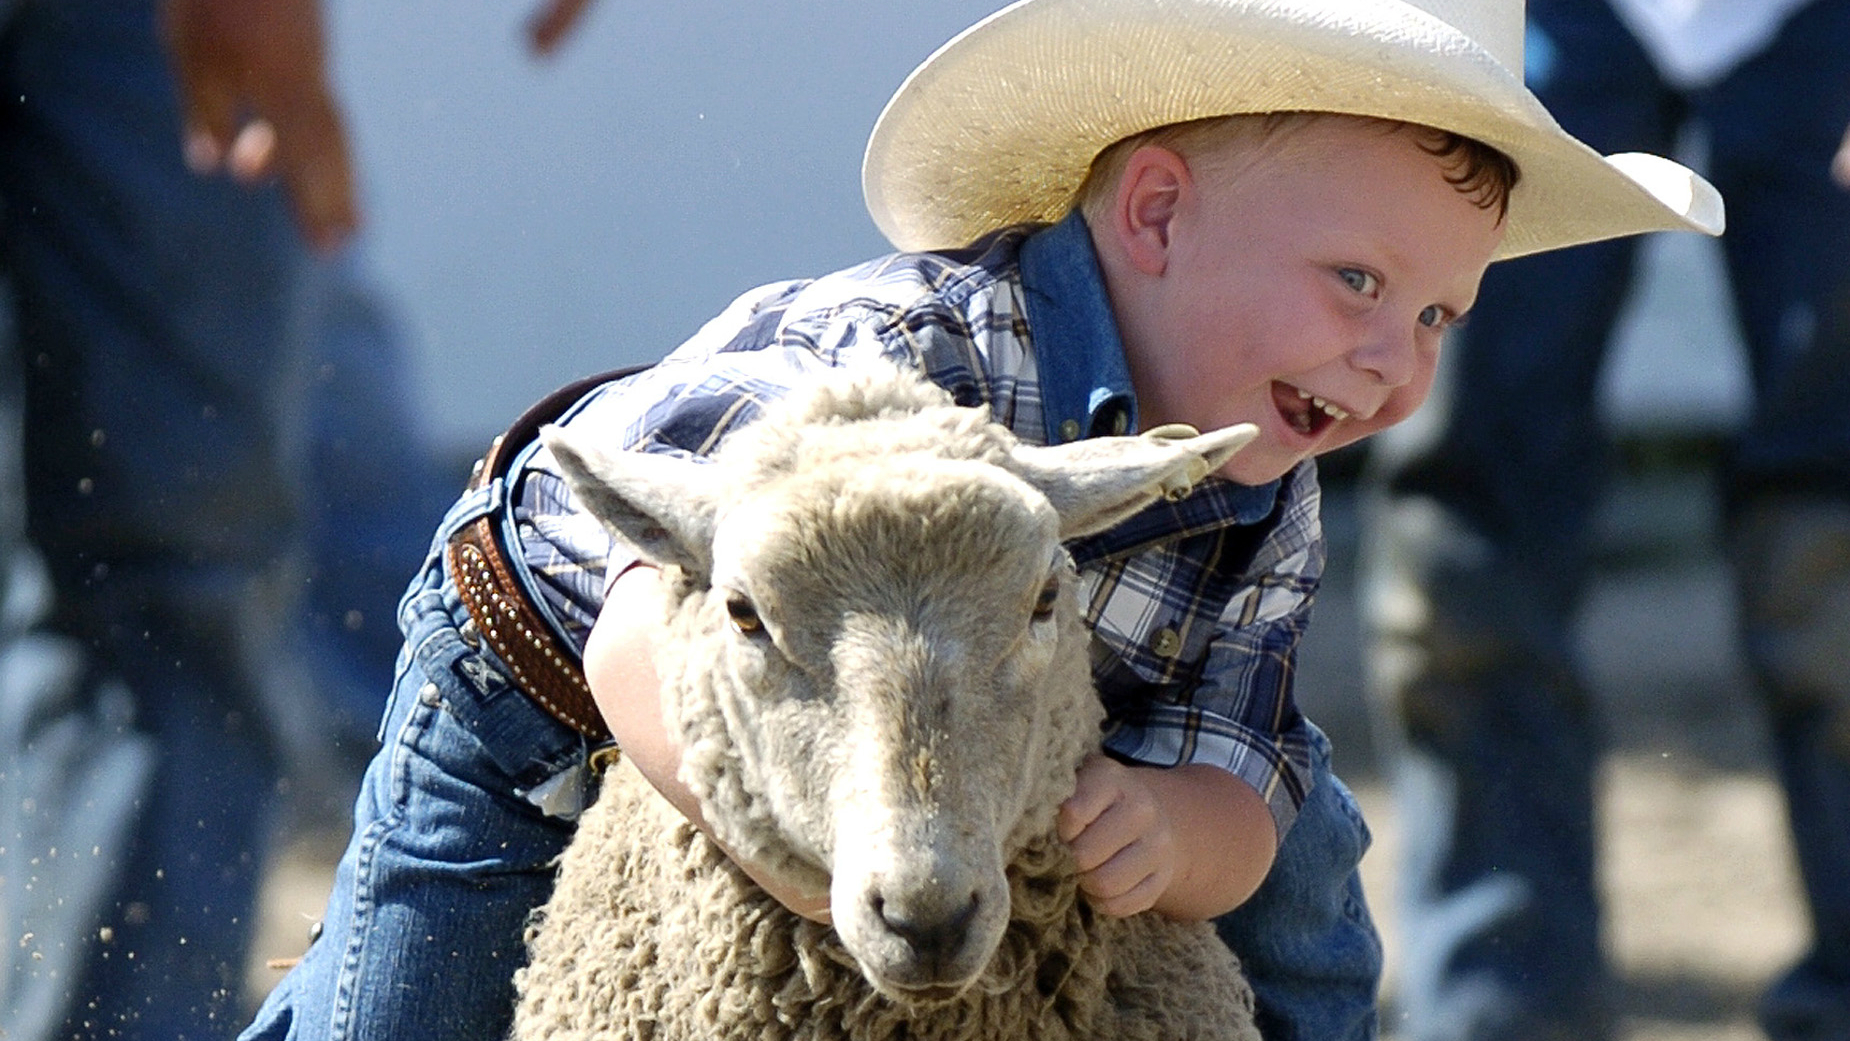 A kid riding a sheep.